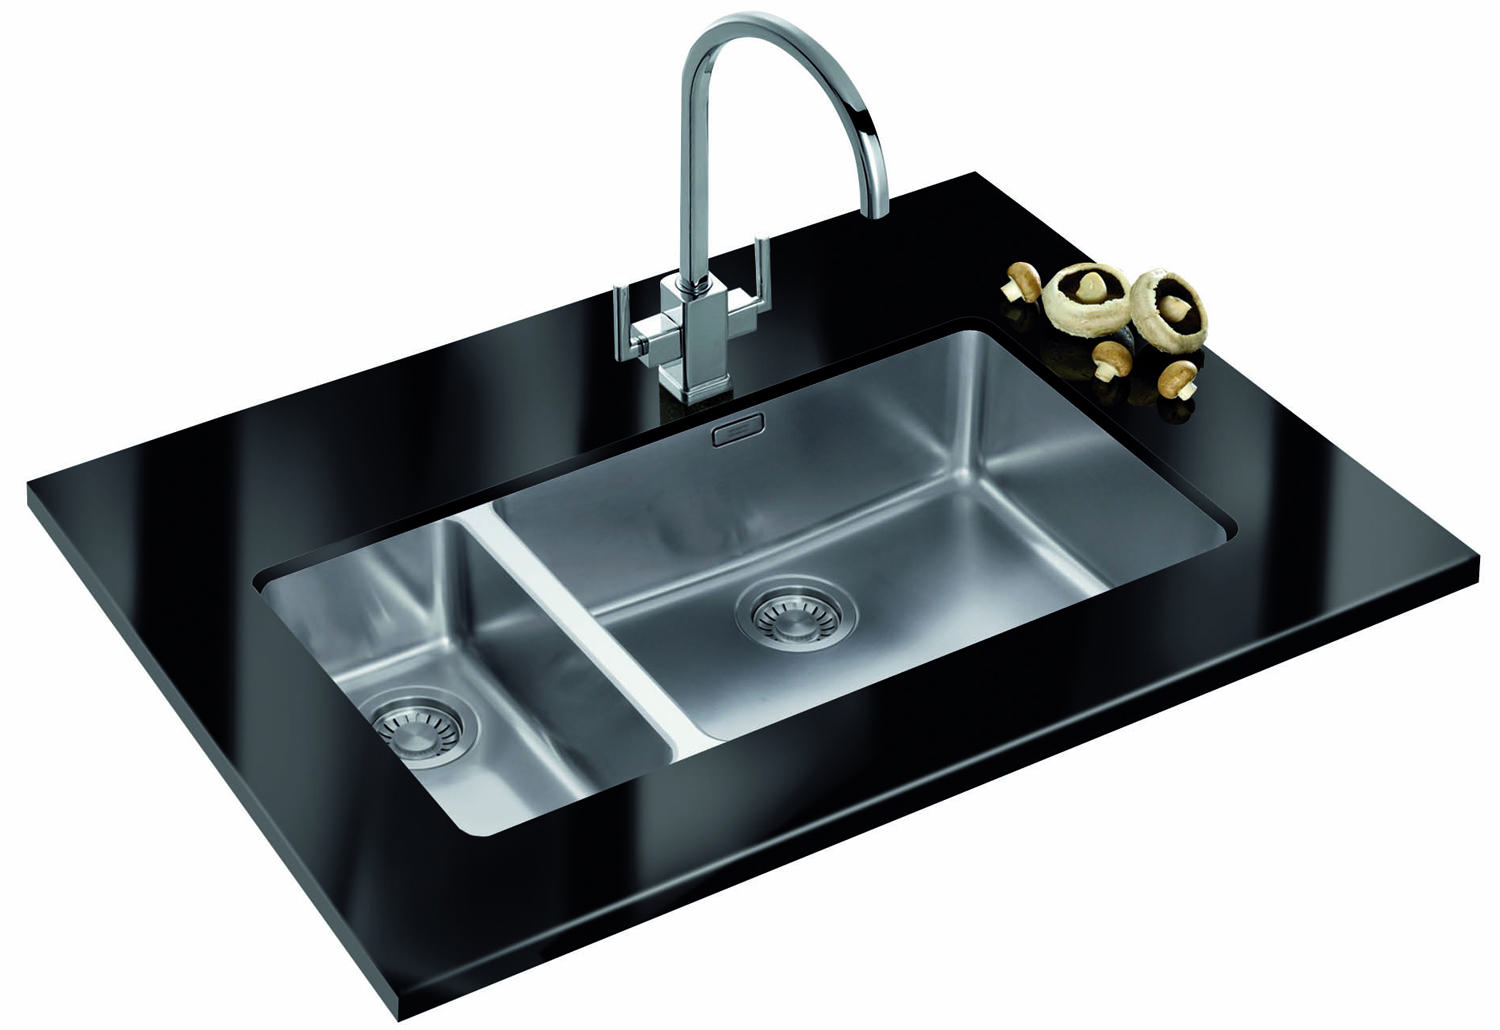 Franke Sink Kubus : ... of Franke Kubus KBX 160 55-20 Stainless Steel 1.5 Bowl Undermount Sink